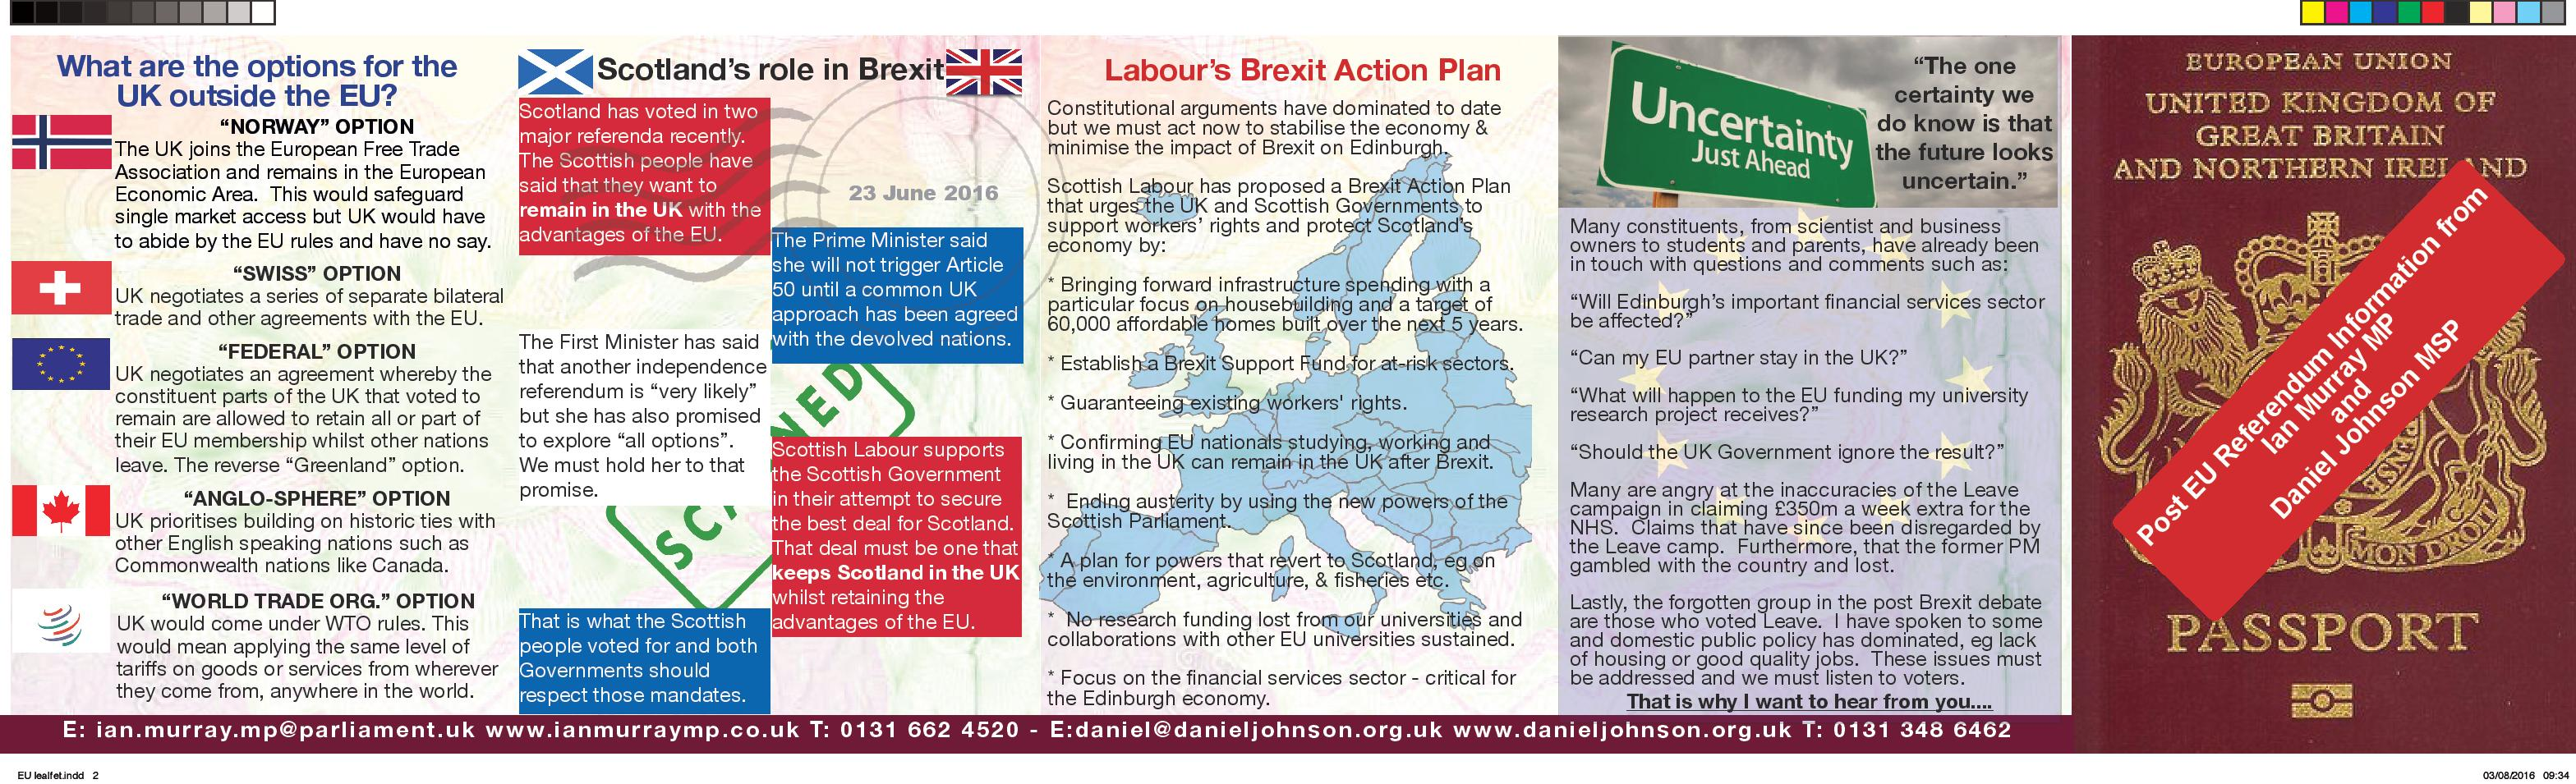 EU_LEAFLET_-_PRINTED_FINAL_no_guidelines-page-002.jpg